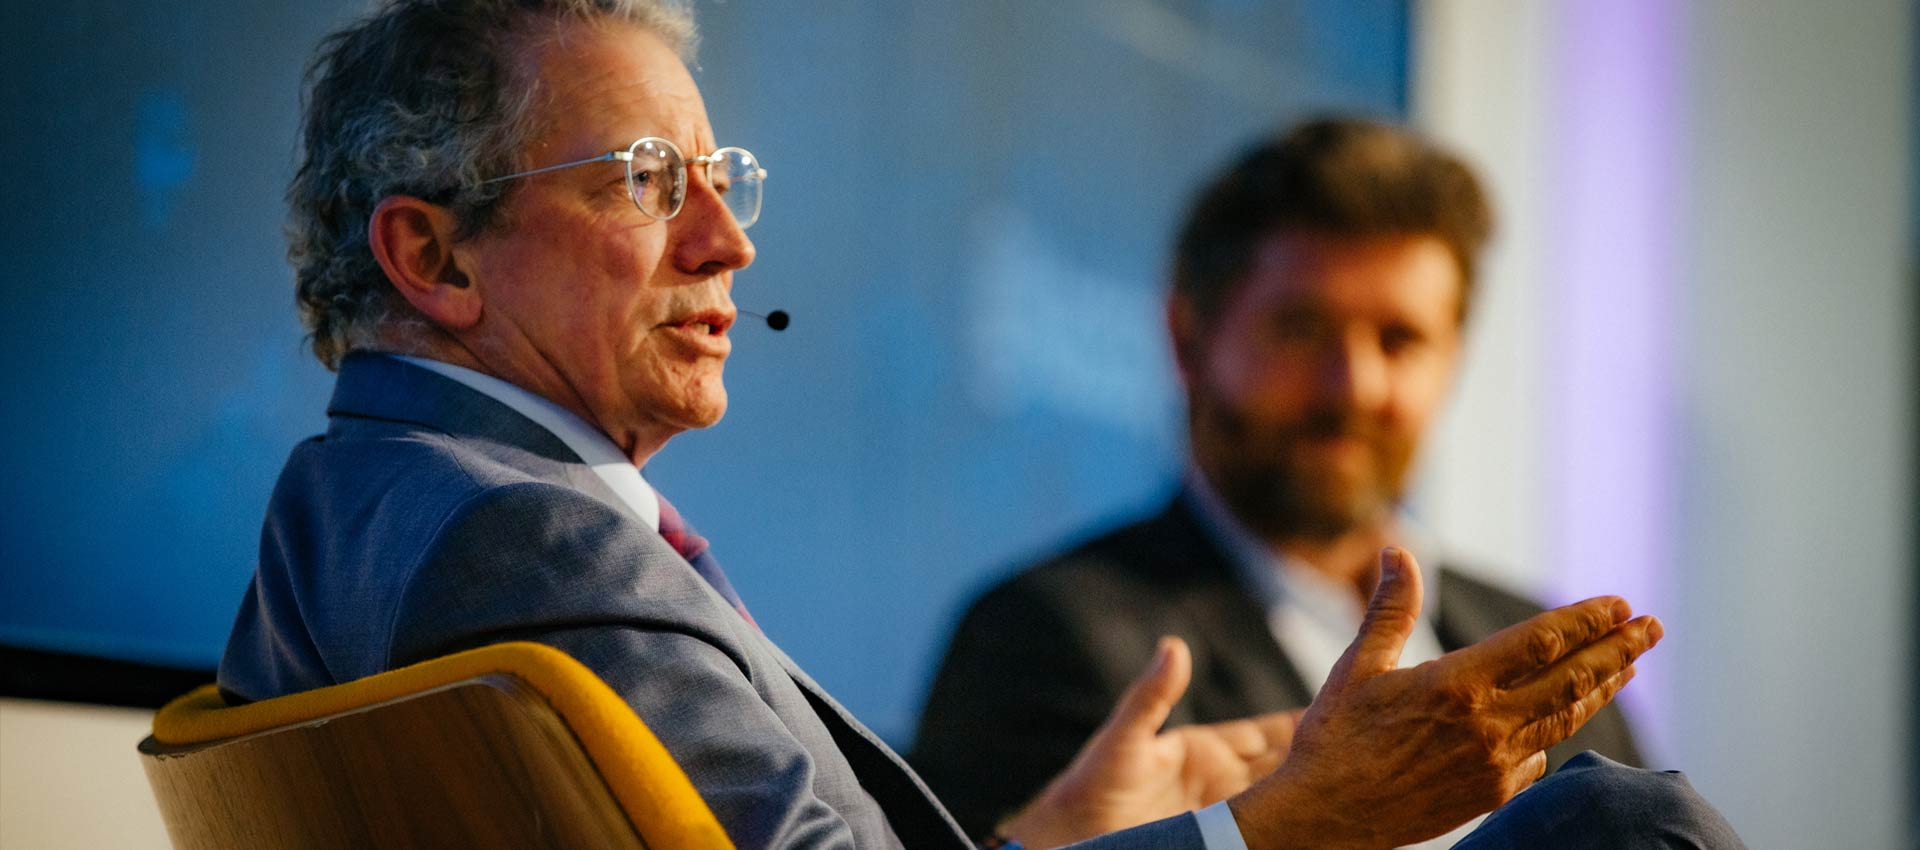 Tom Siebel at Nasdaq Entrepreneurial Center